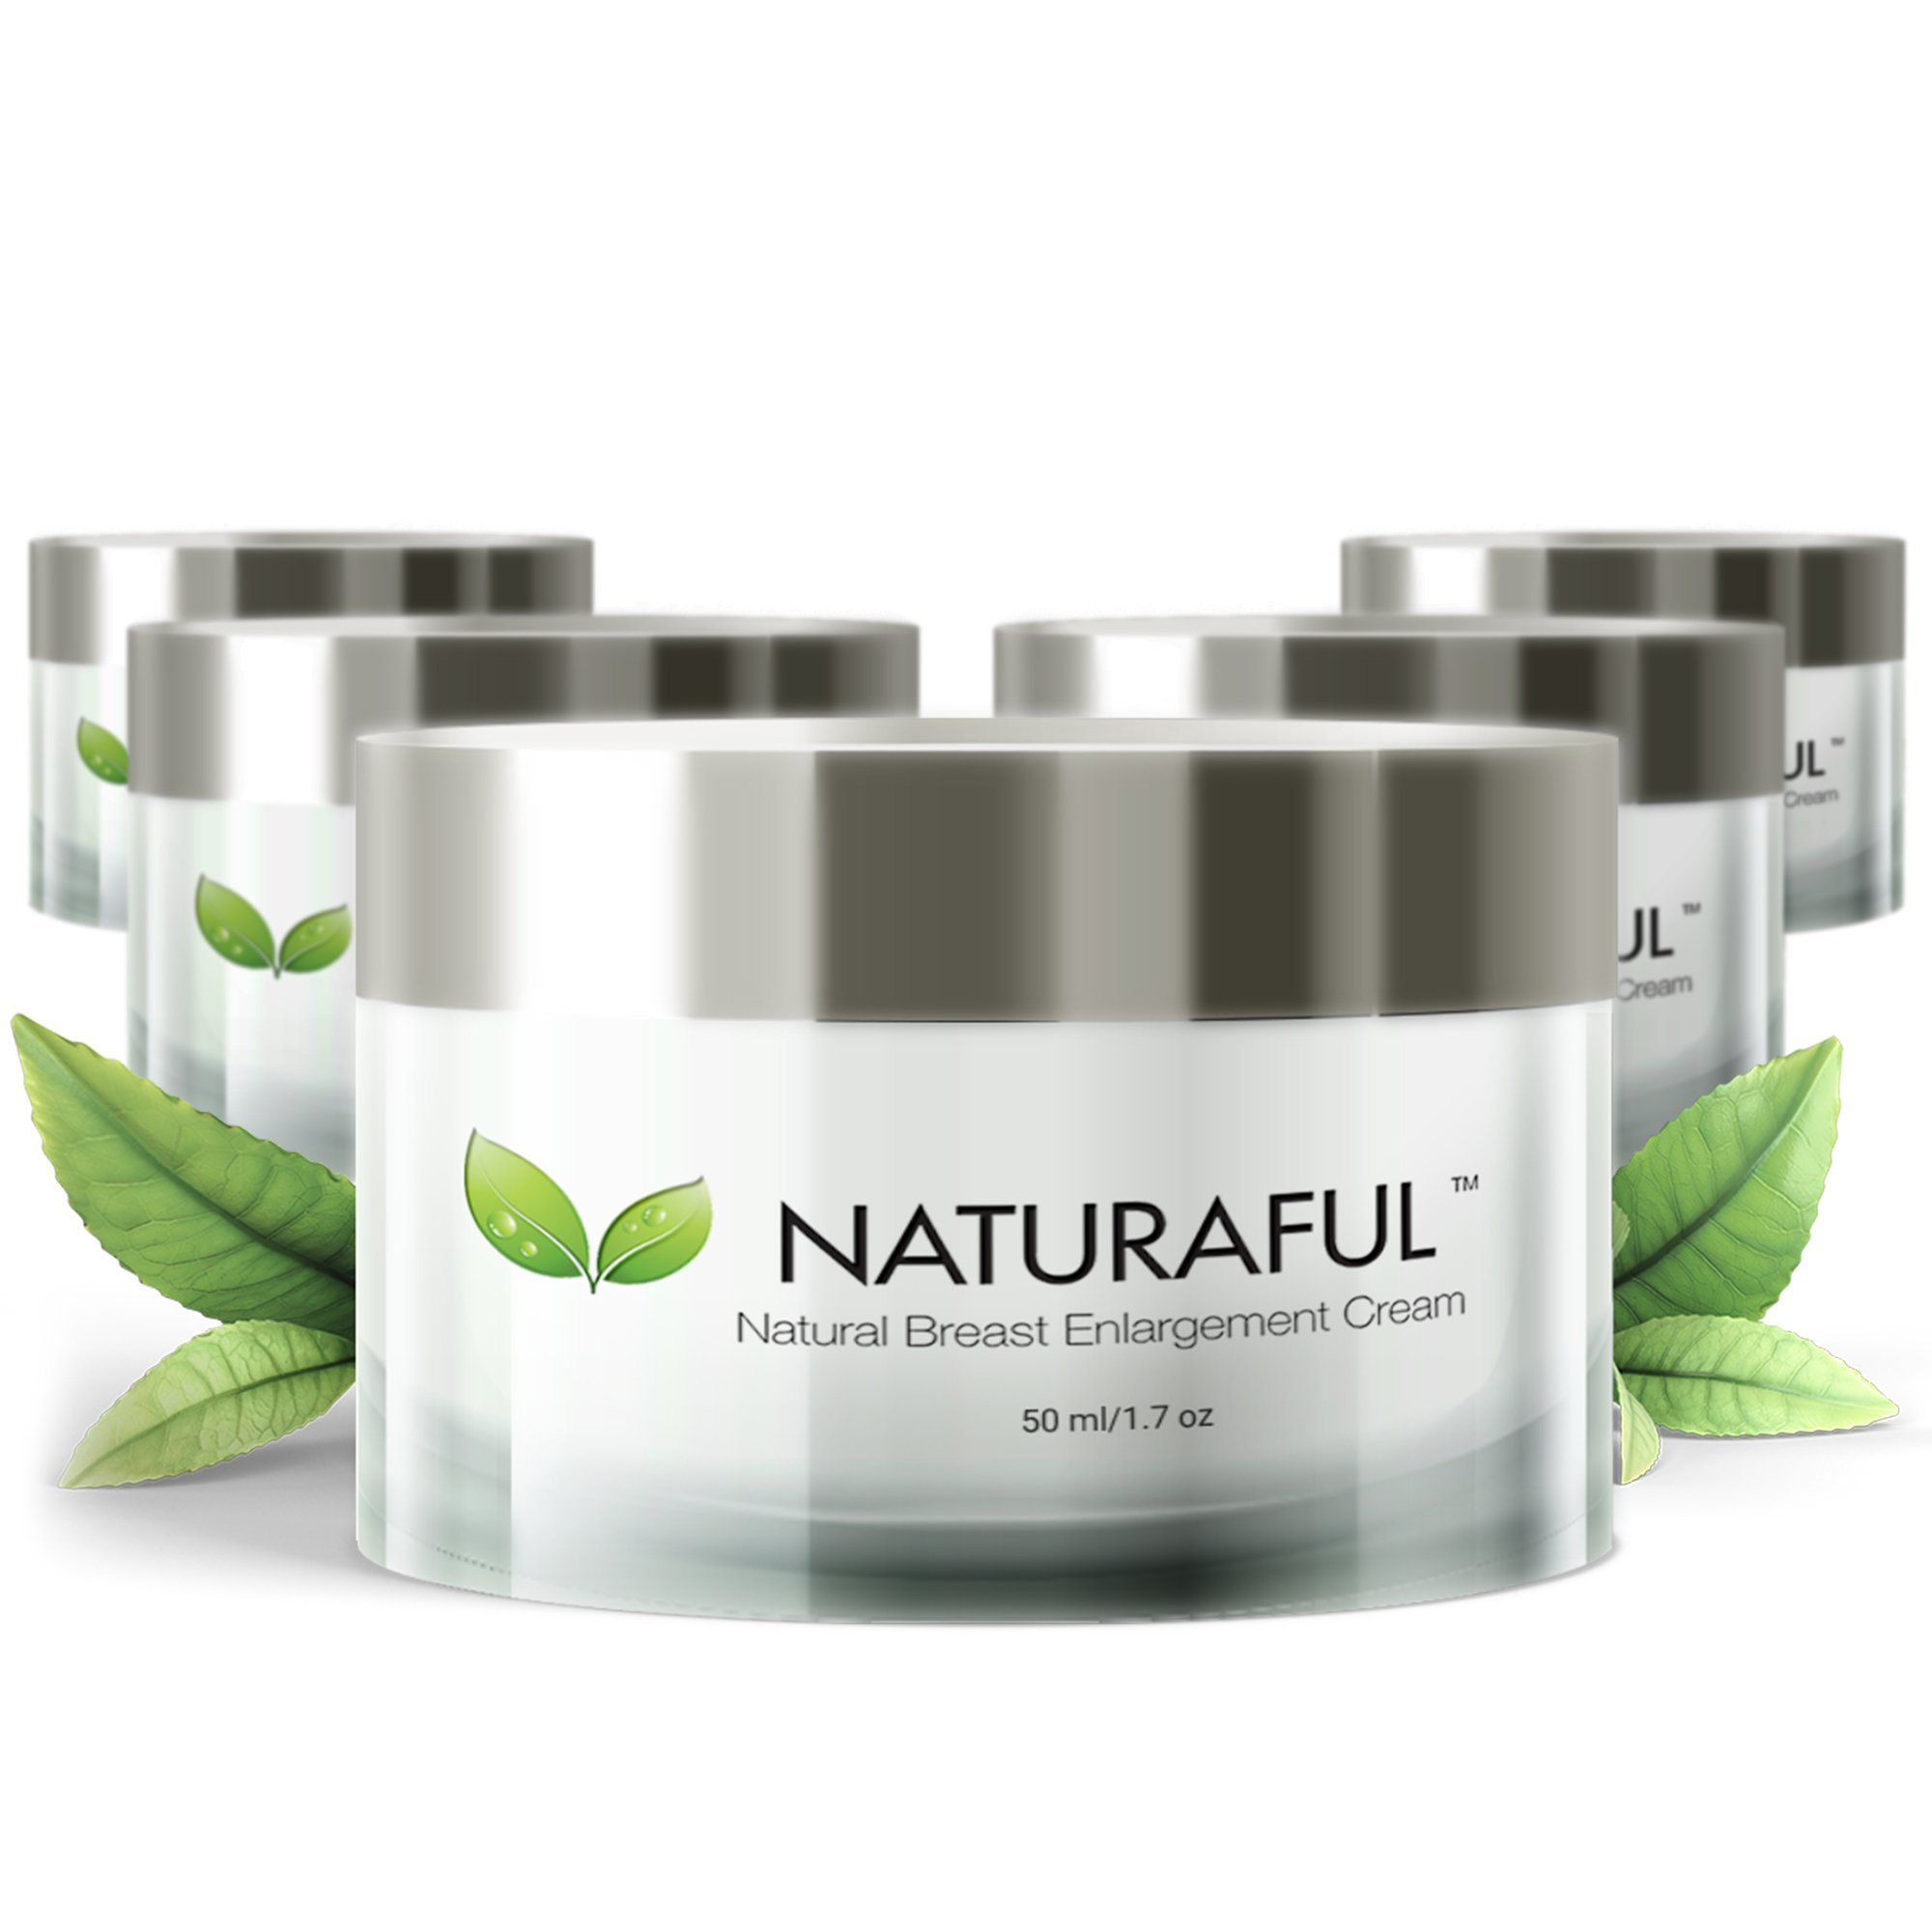 NATURAFUL - (5 JAR SUPPLY) TOP RATED Breast Enhancement Cream - Natural Breast Enlargement, Firming and Lifting Cream | Hormone Balancing, Made from Plant Extracts, Trusted by Over 100,000 Users by Naturaful (Image #1)